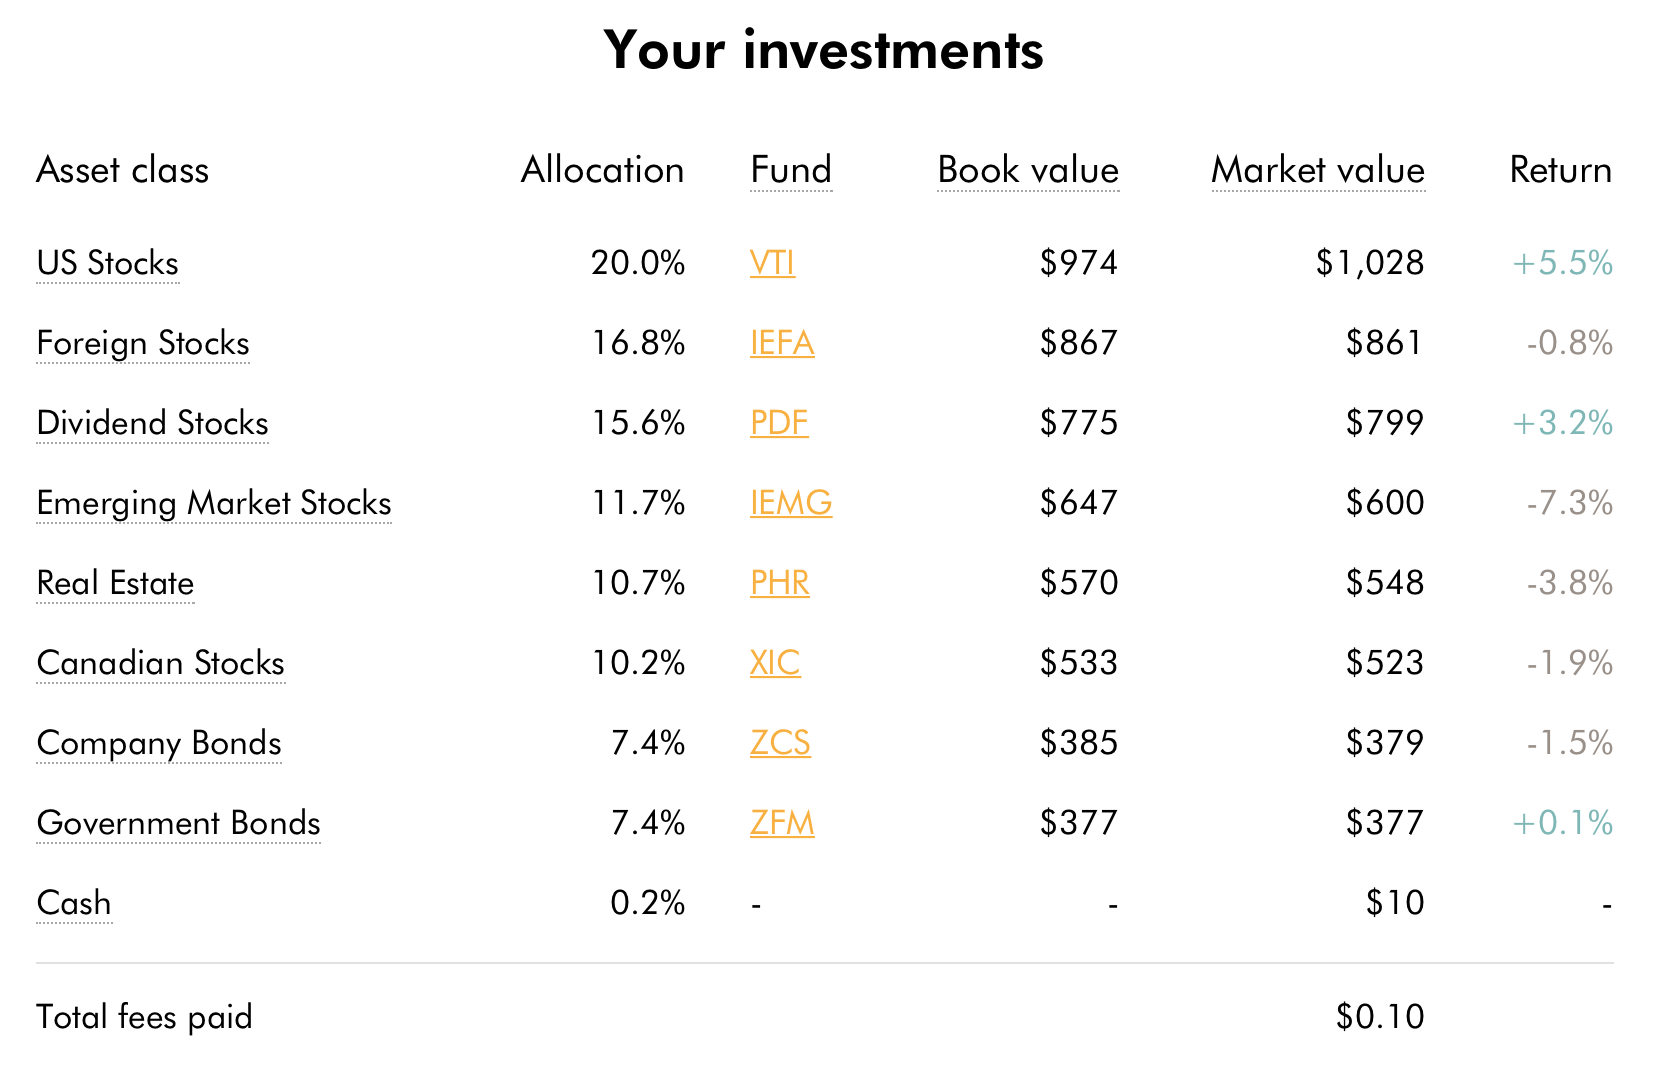 The portfolio has risen nicely the past few months as the market recovered from the January correction